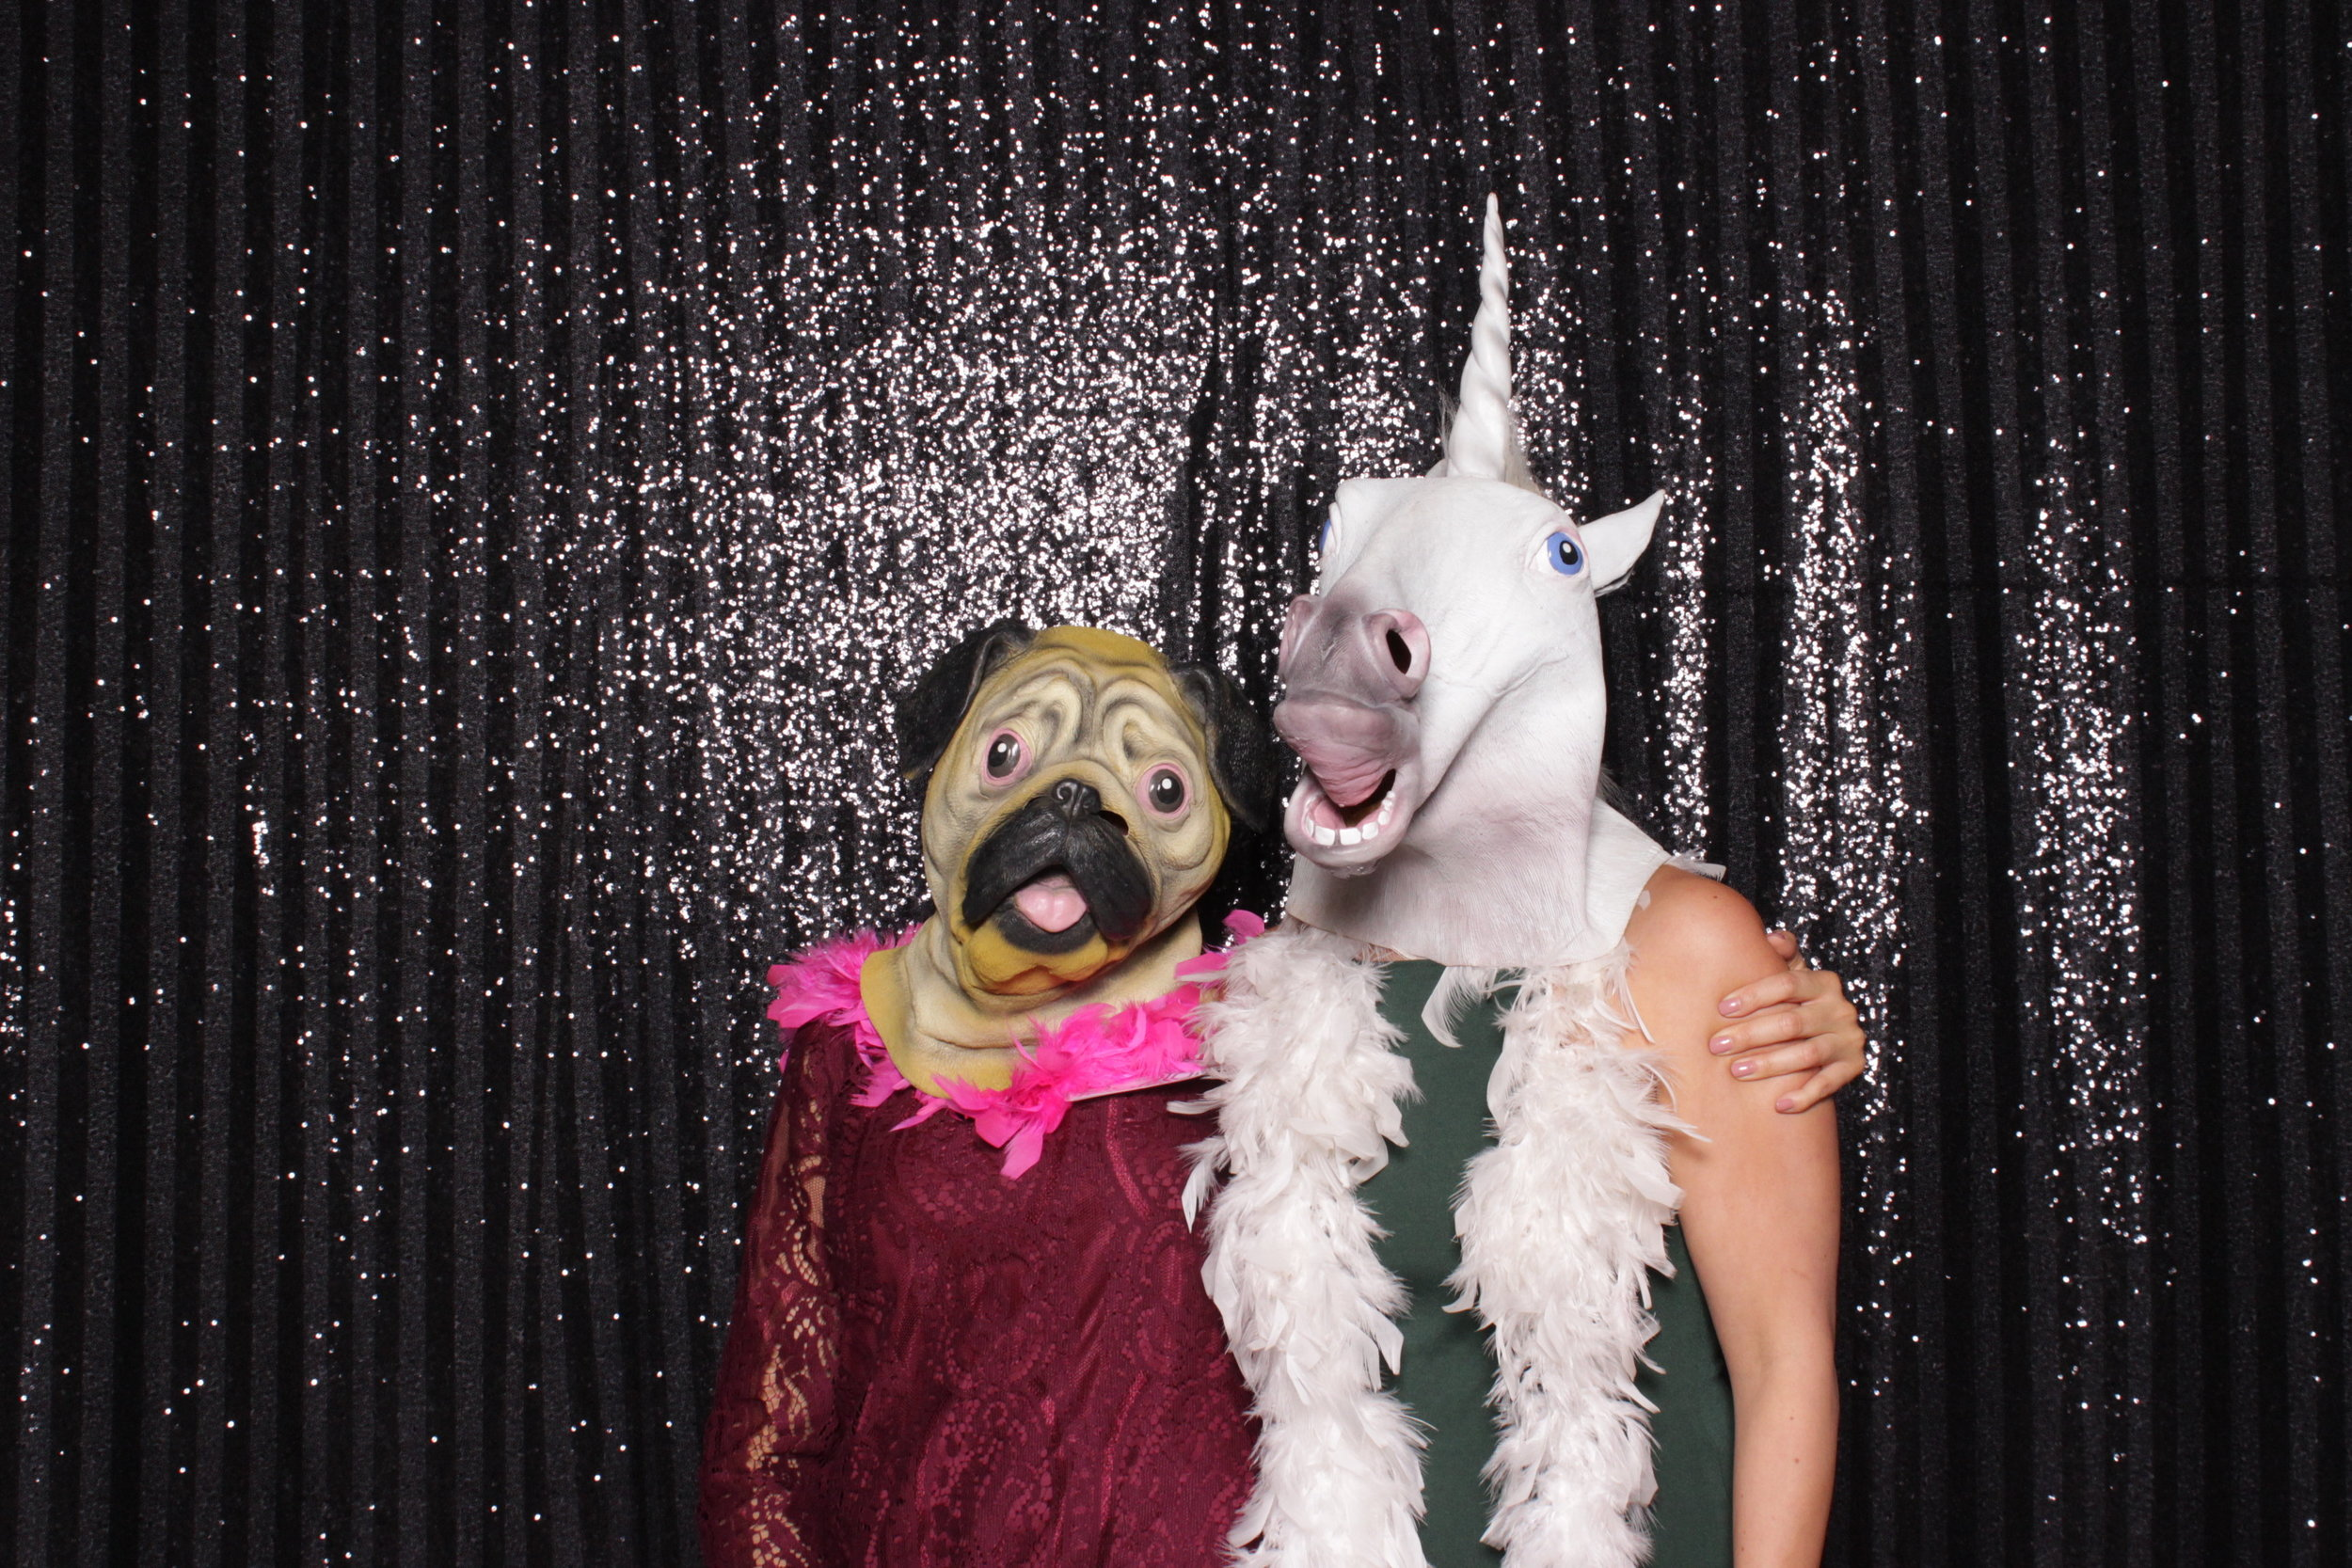 Chico-photo-booth-rental-unicorn-madness